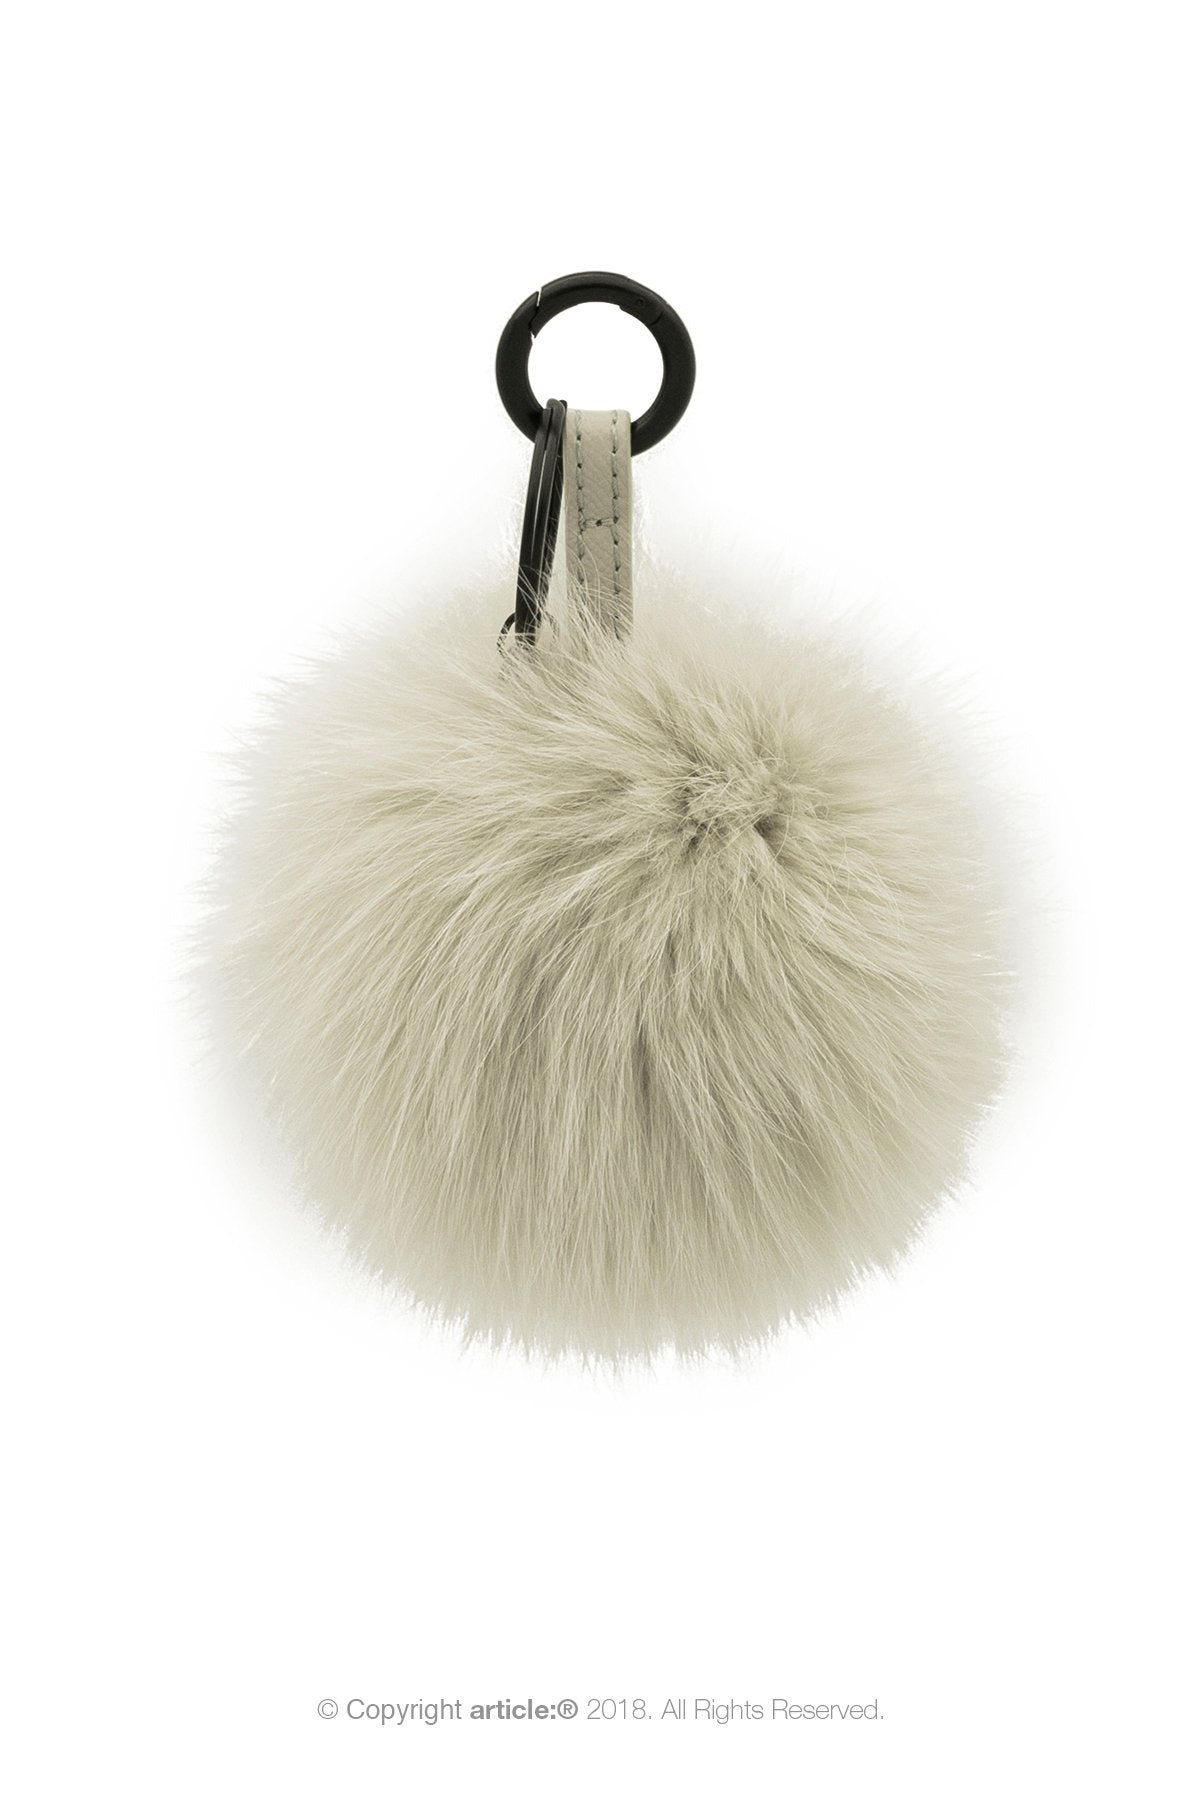 article: #400 Bag Charm / Keyring Pom Pom - Oyster